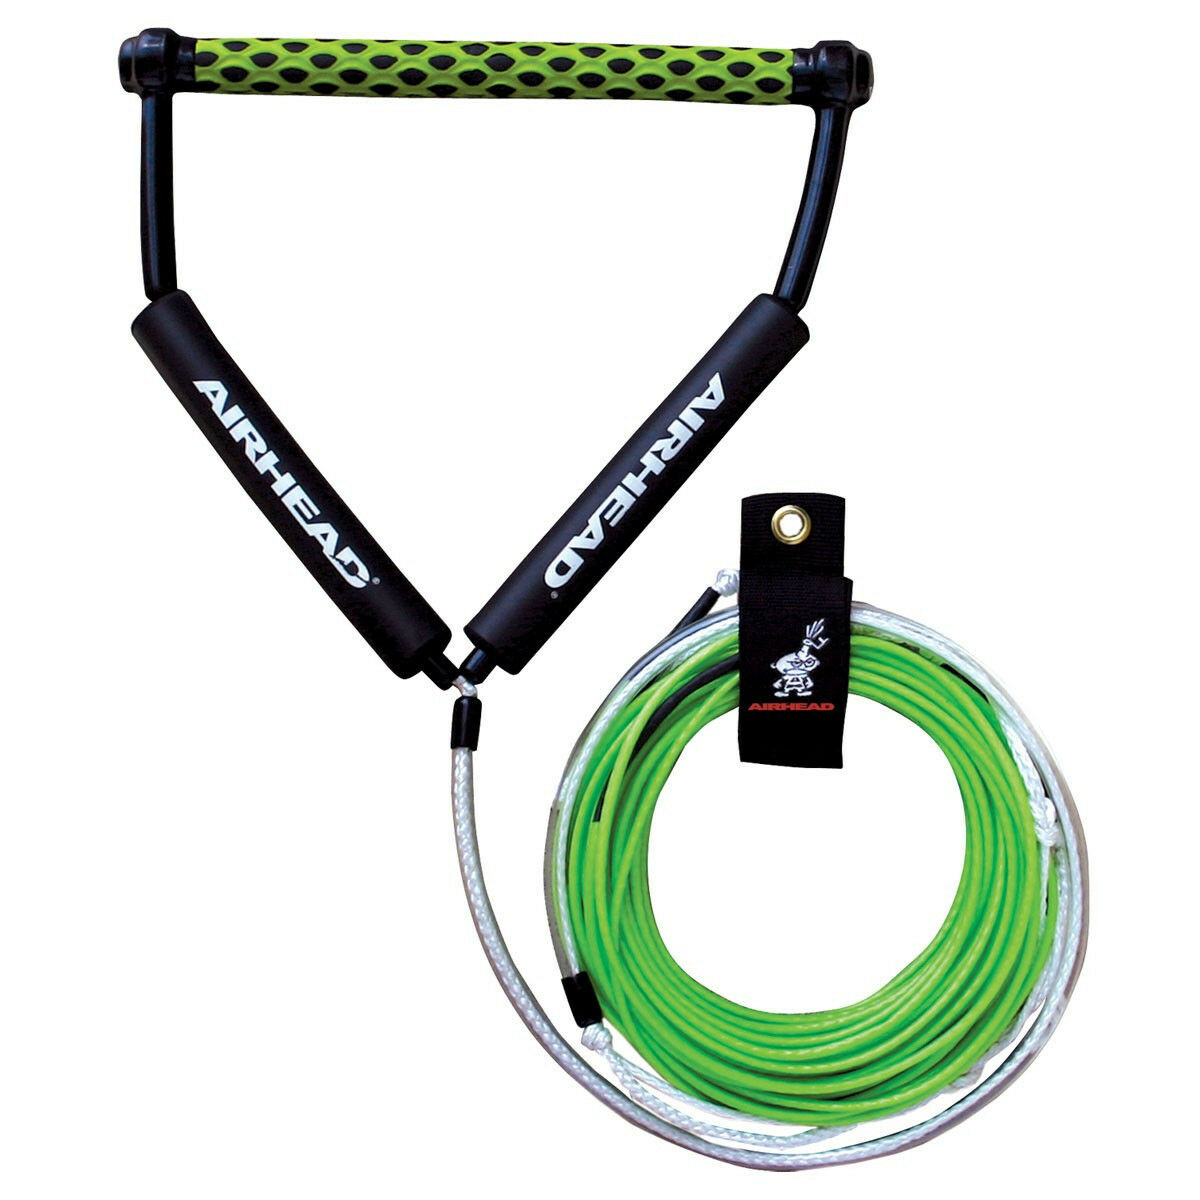 AIRHEAD Spectra Thermal Wakeboard Rope - 70' 5-Section  AHWR-4 NEW